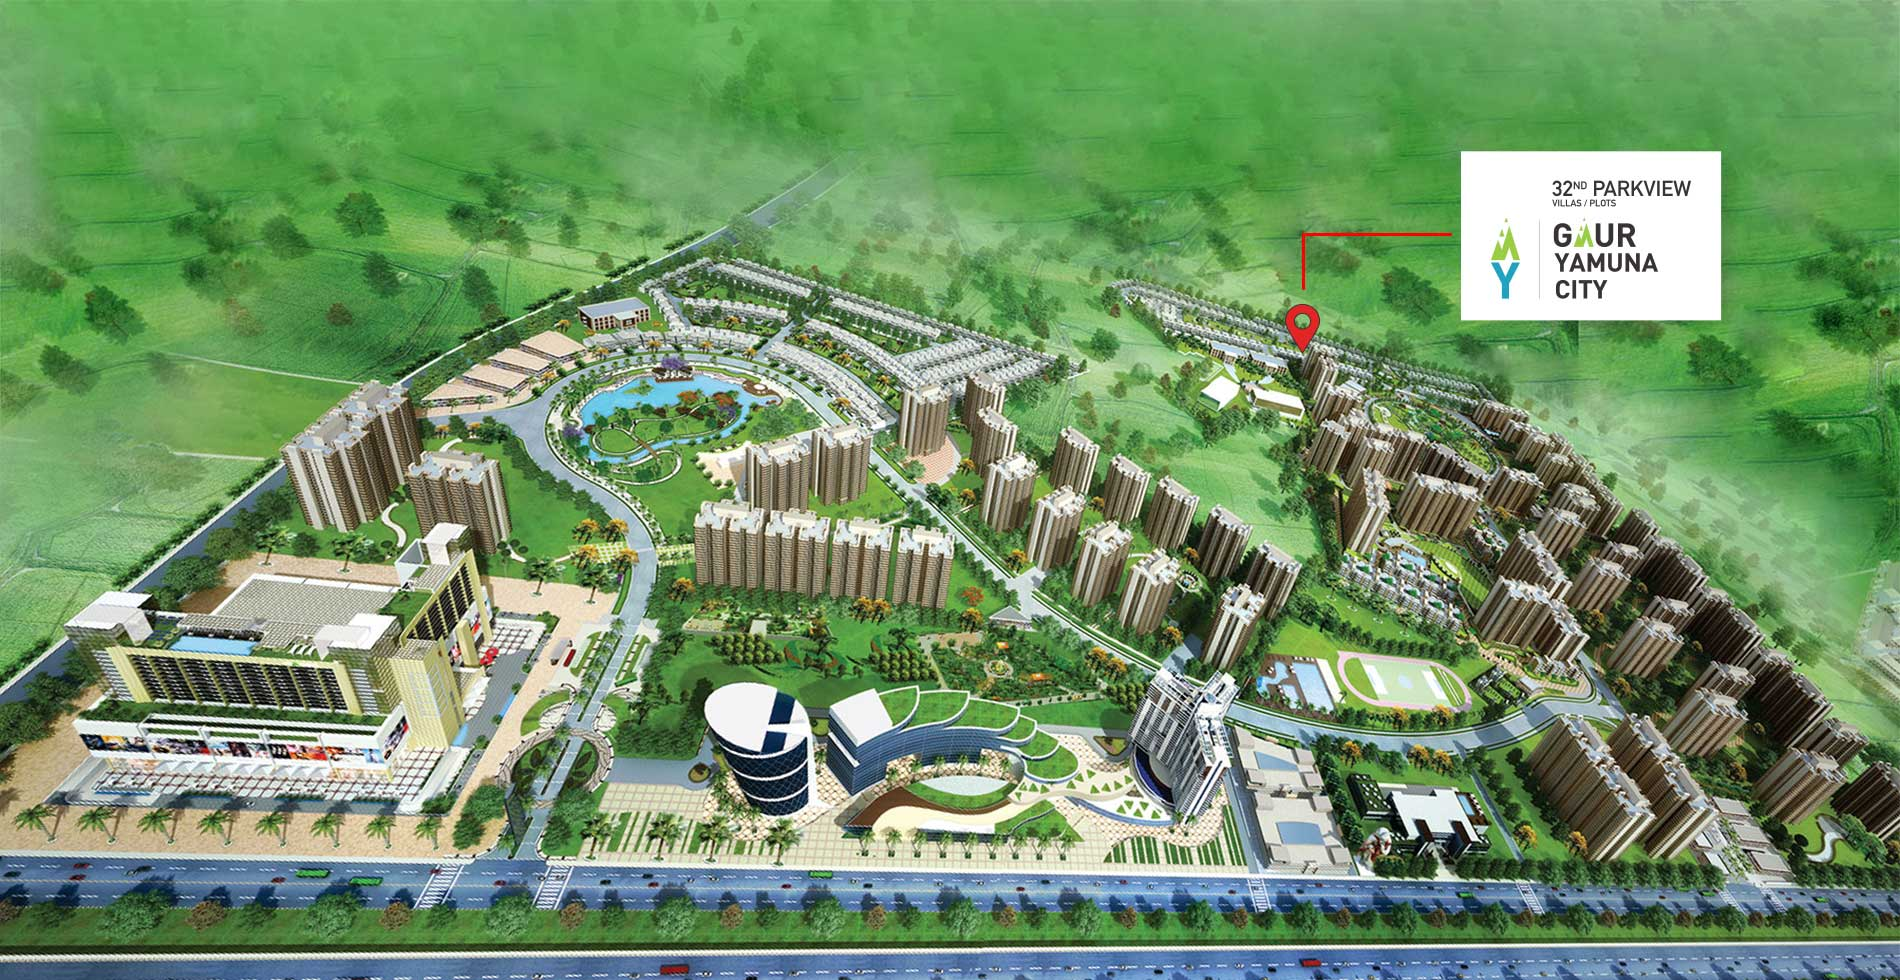 Gaur Yamuna City 32nd Parkview